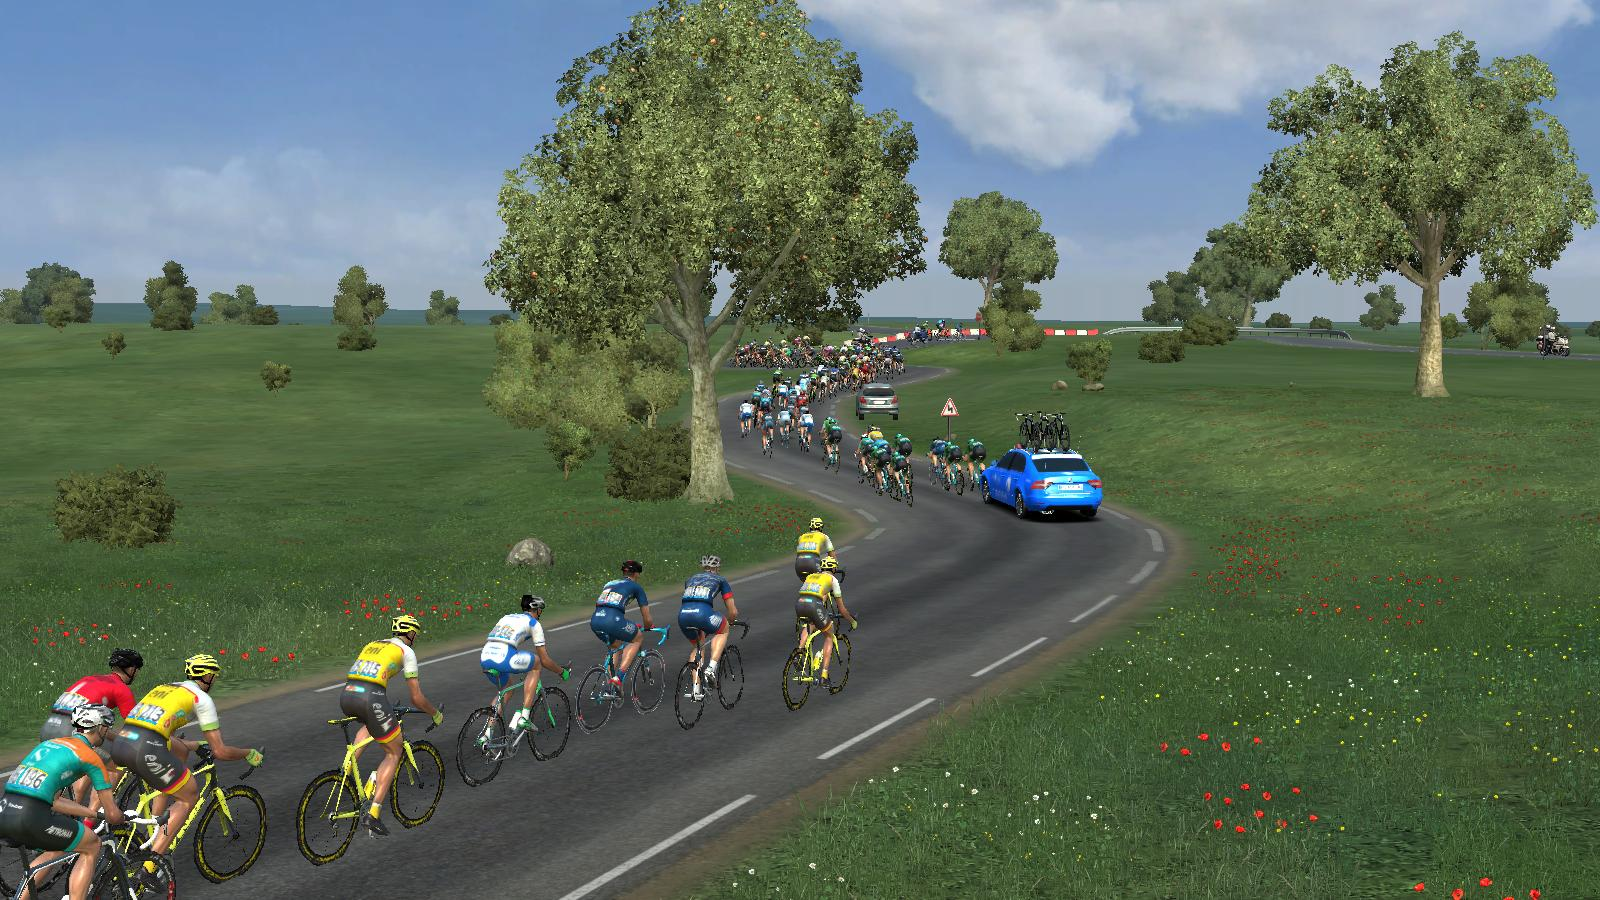 pcmdaily.com/images/mg/2019/Races/PTHC/Rheden/12.jpg